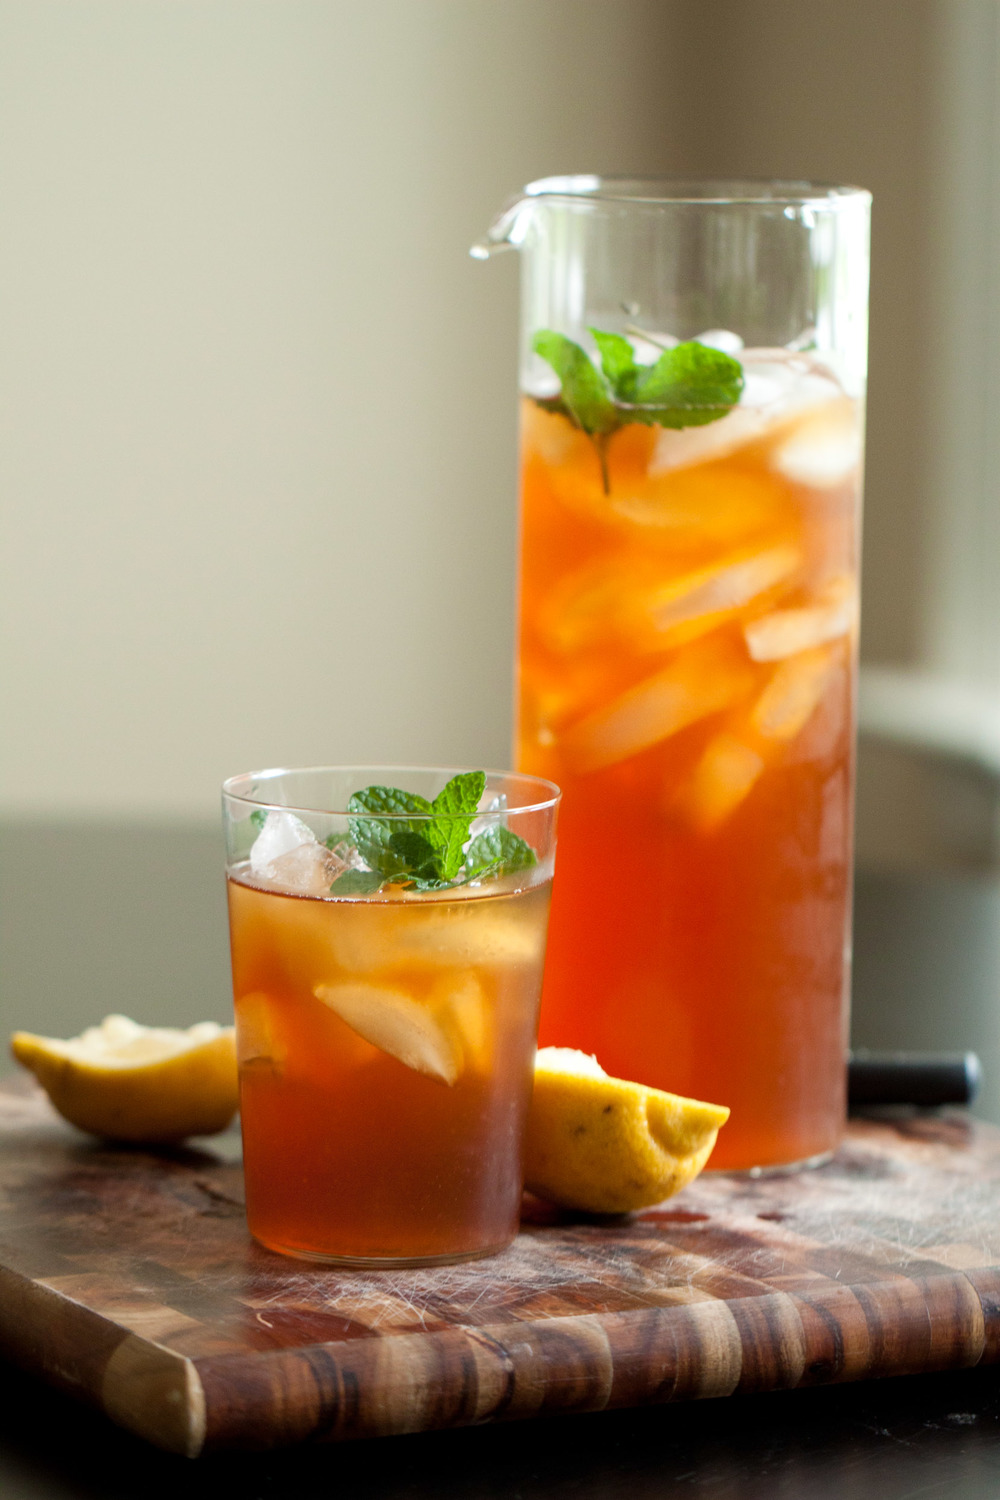 ... iced tea iced lychees 5 0 from 5 reviews strawberry rhubarb iced tea